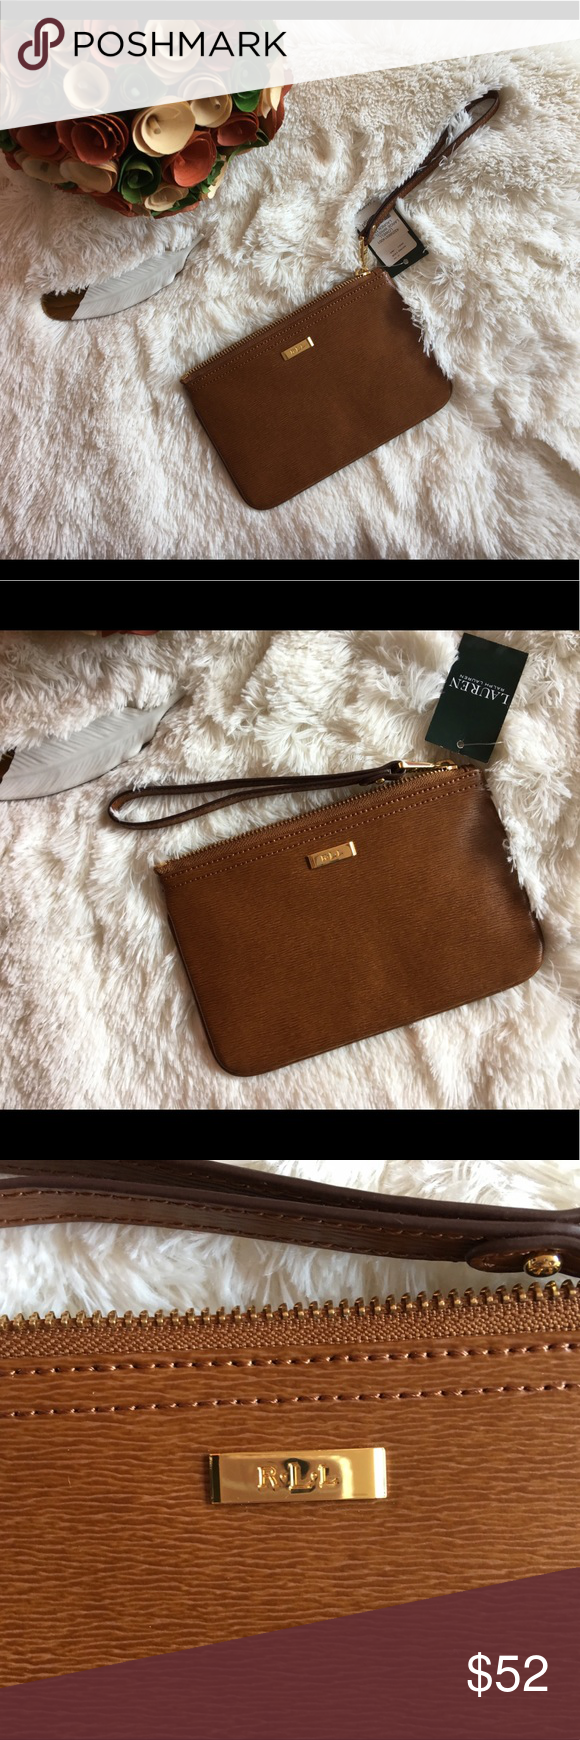 c586a7b16ce Ralph Lauren Large Brown Wristlet Classy and quality Brand New large  wristlet from RLL. Material 100% cow leather. Features a small pocket.